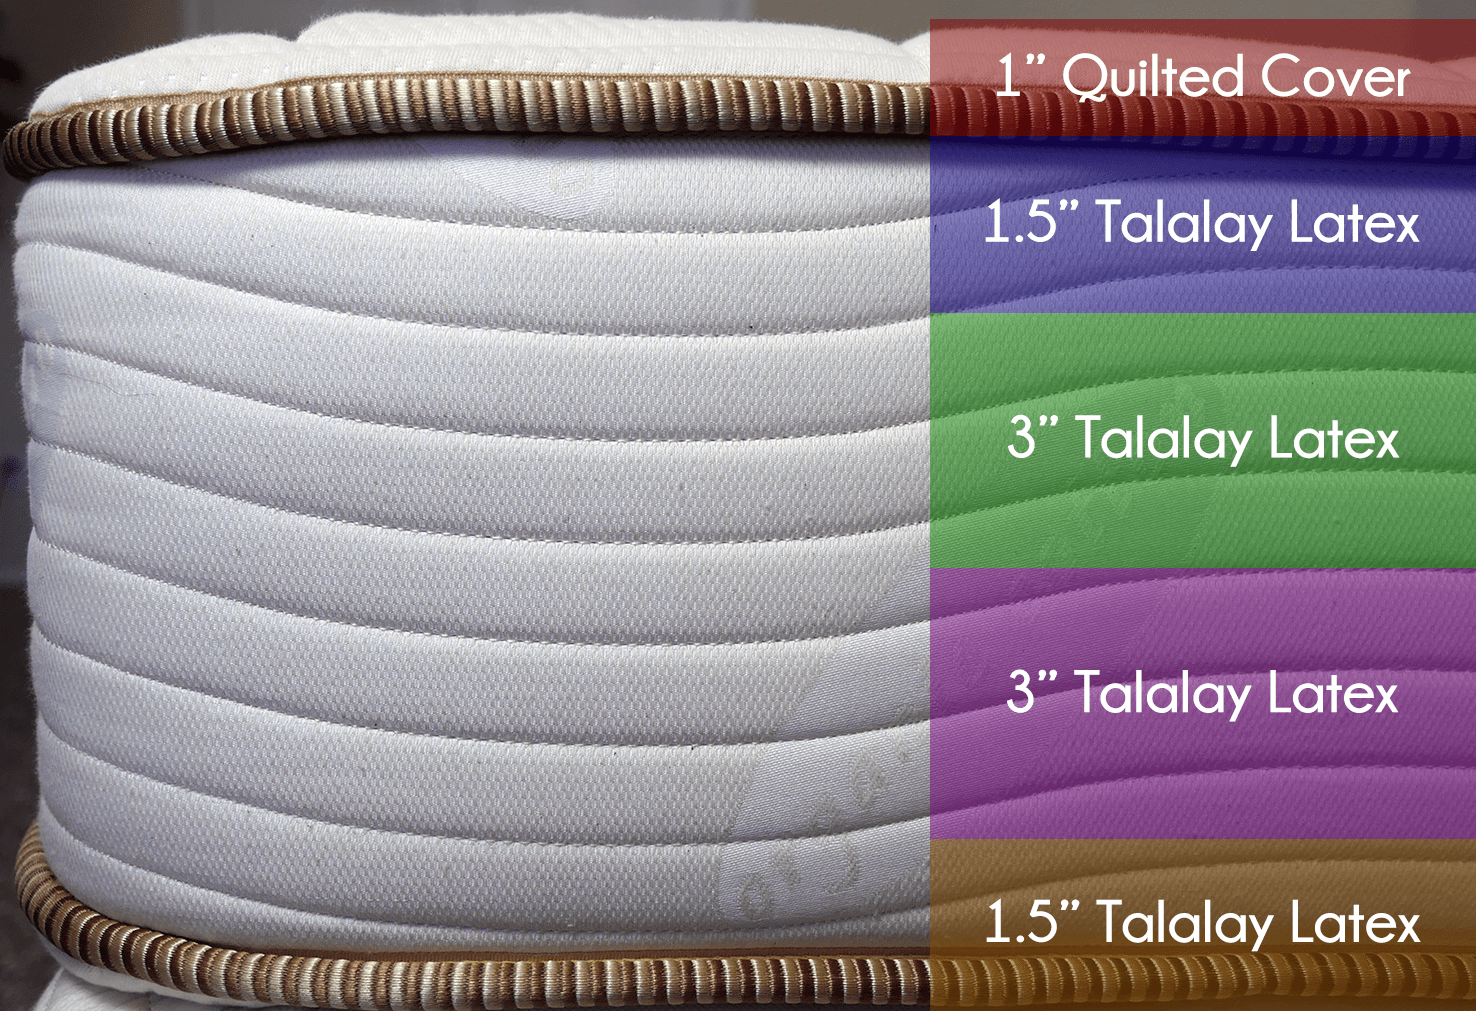 """ZenHaven layers (top to bottom) - 1"""" quilted cover, 1.5"""" Talalay latex, 3"""" Talalay latex, 3"""" Talalay latex, 1.5"""" Talalay latex"""